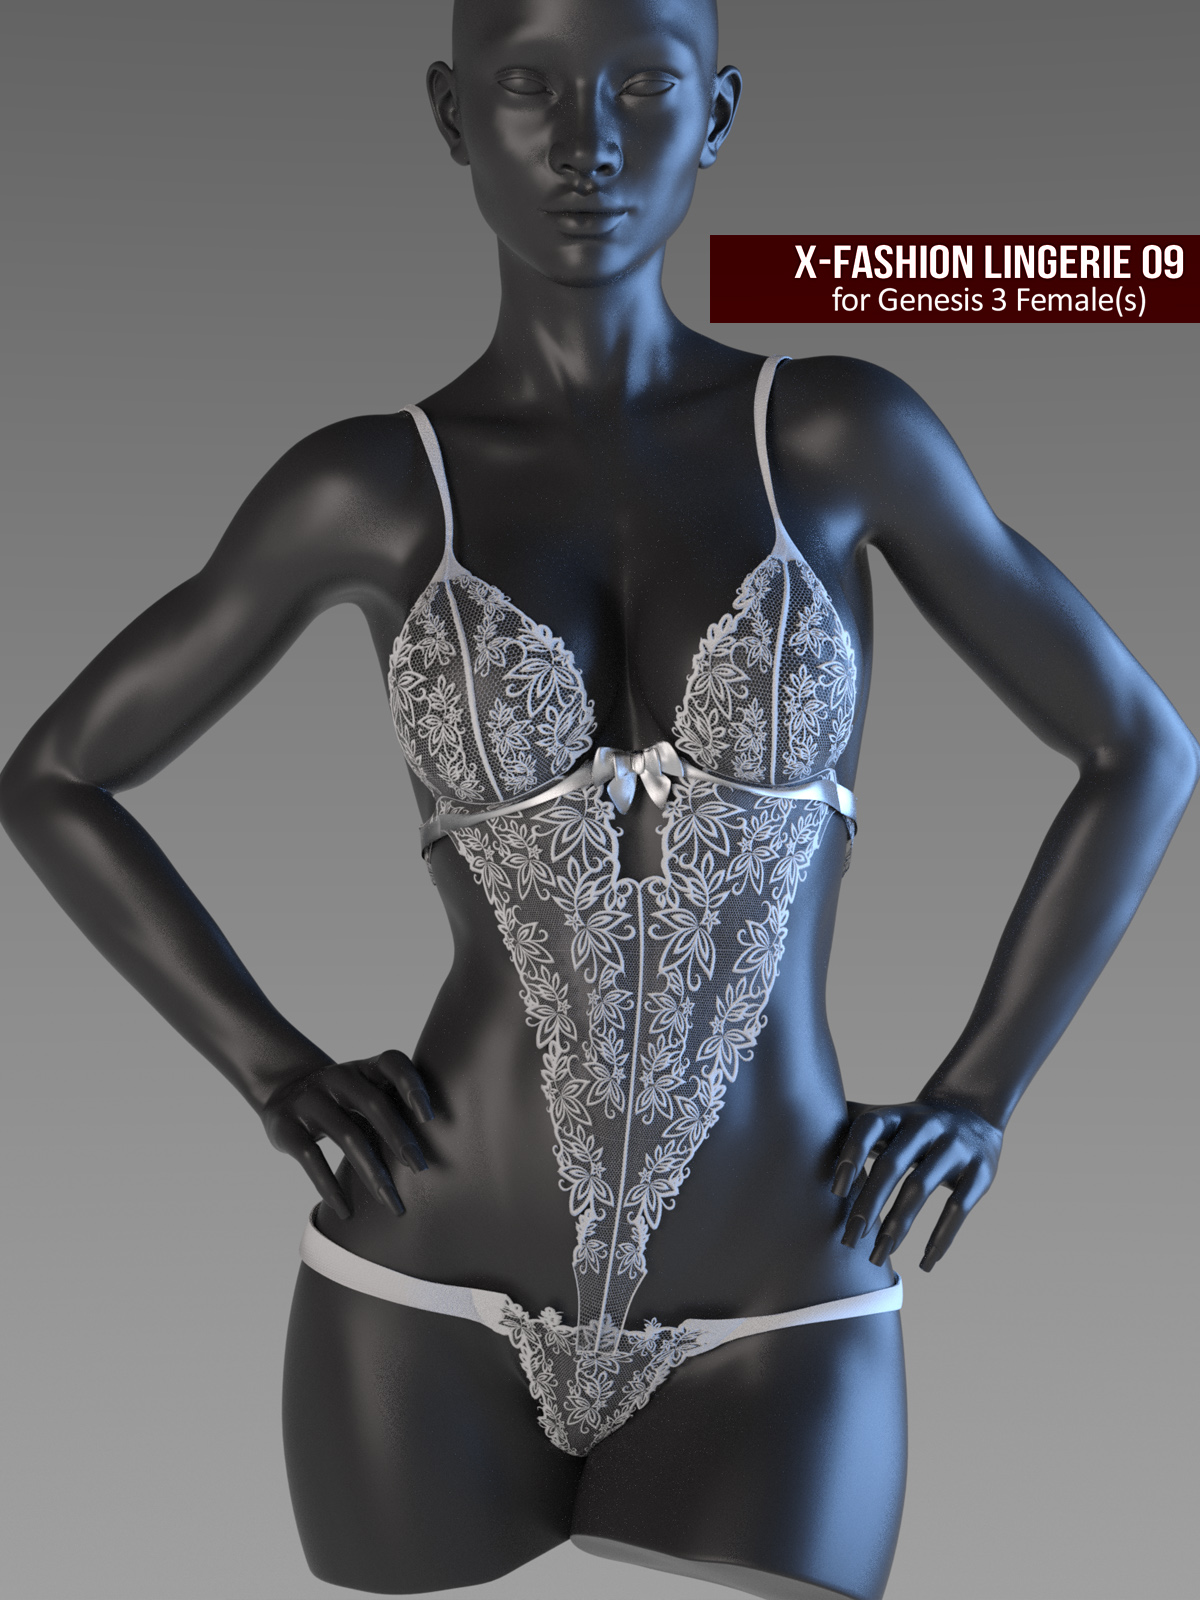 X-Fashion Lingerie 9 for Genesis 3 Females by xtrart-3d